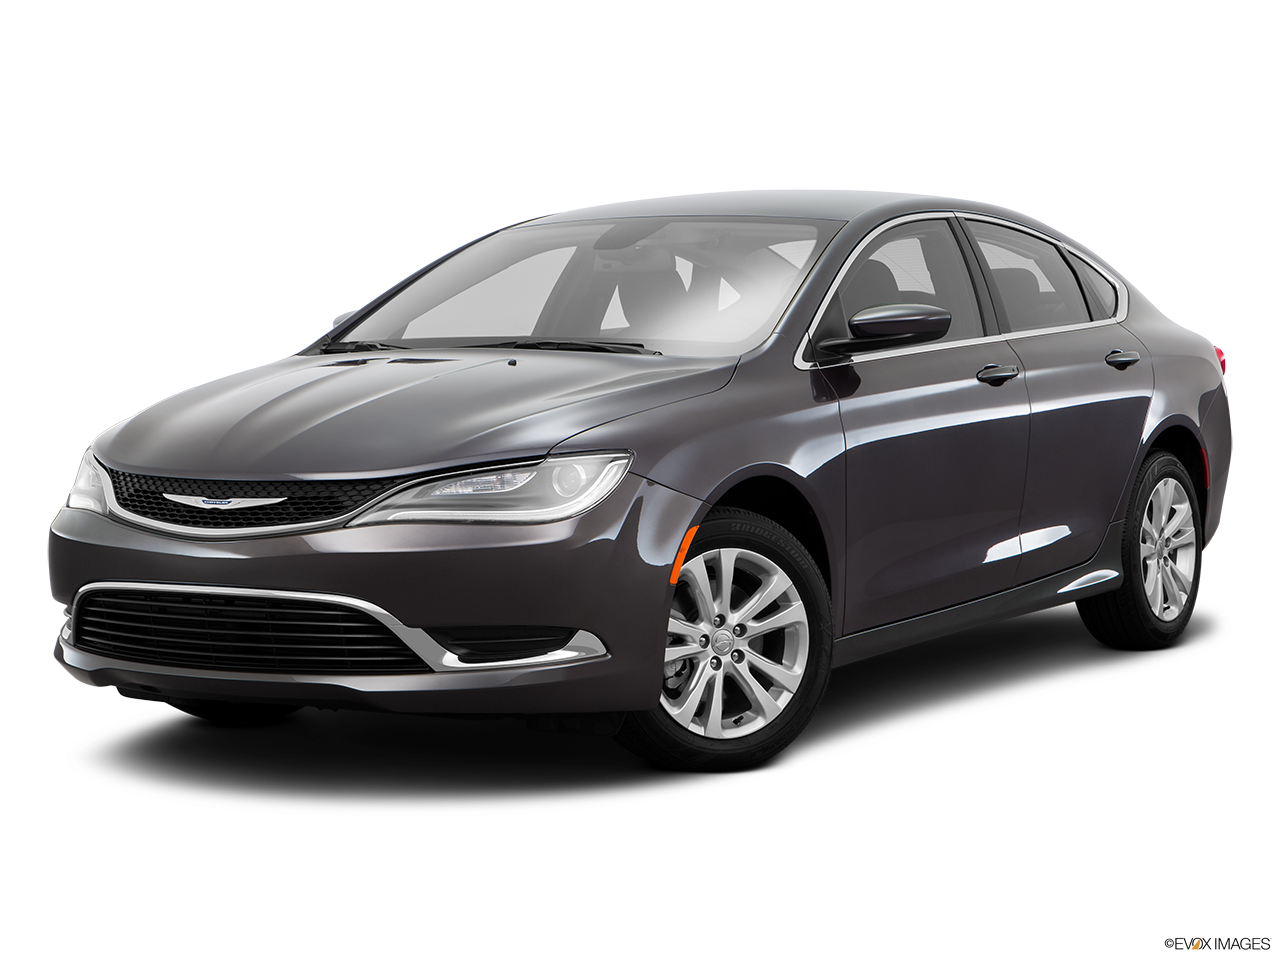 Test Drive A 2016 Chrysler 200 at Premier Chrysler in Tracy